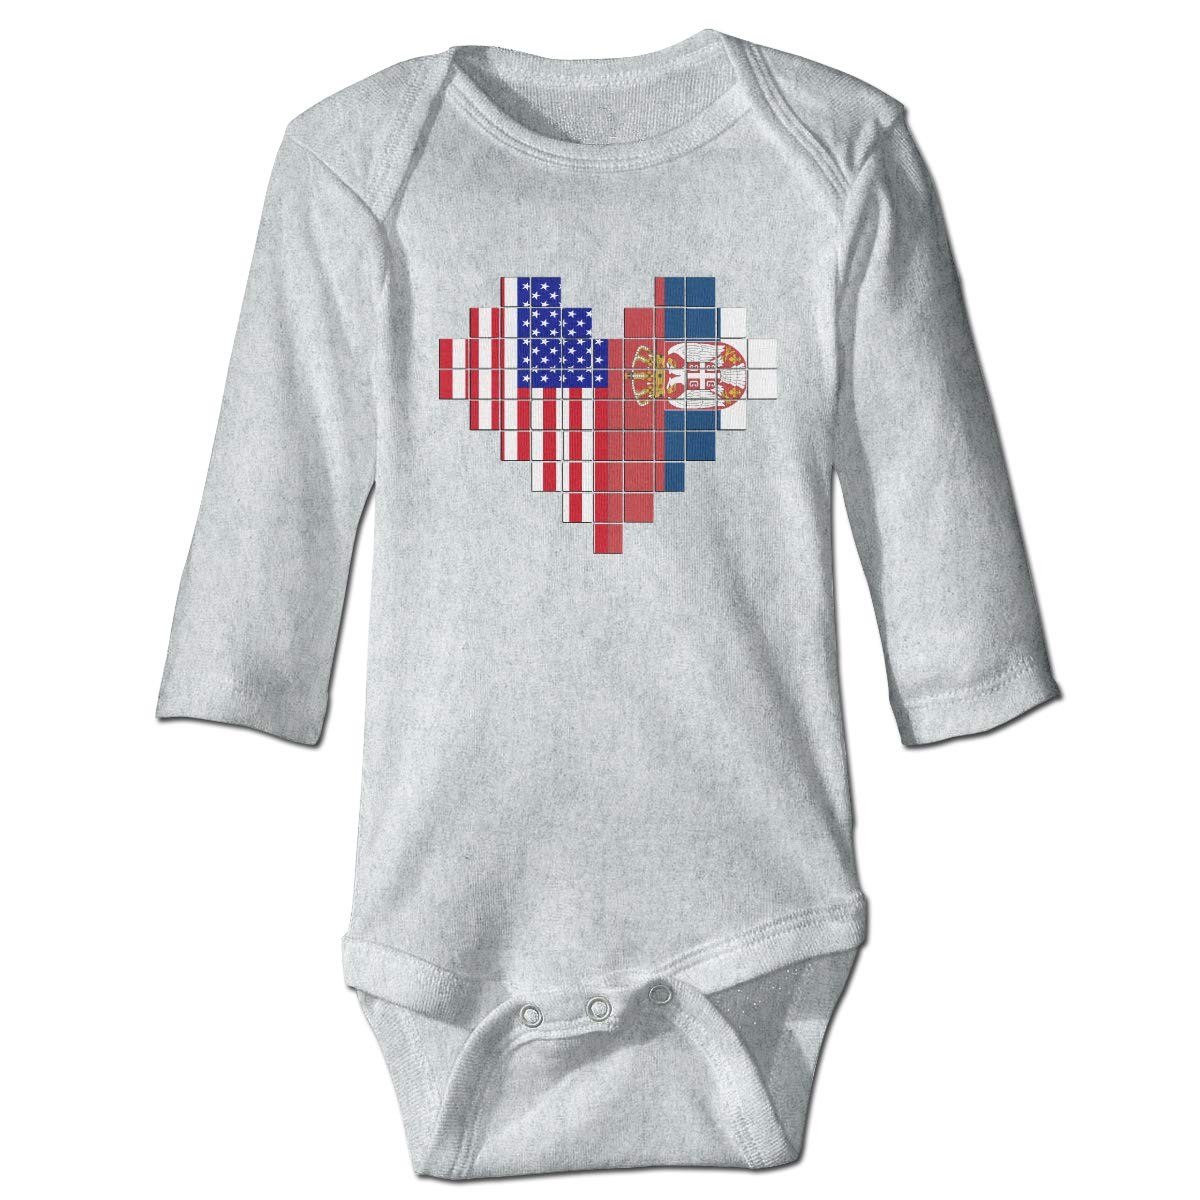 A14UBP Newborn Baby Boys Girls Long Sleeve Climb Romper American Flag Serbia Flag Puzzle Heart Playsuit Outfit Clothes